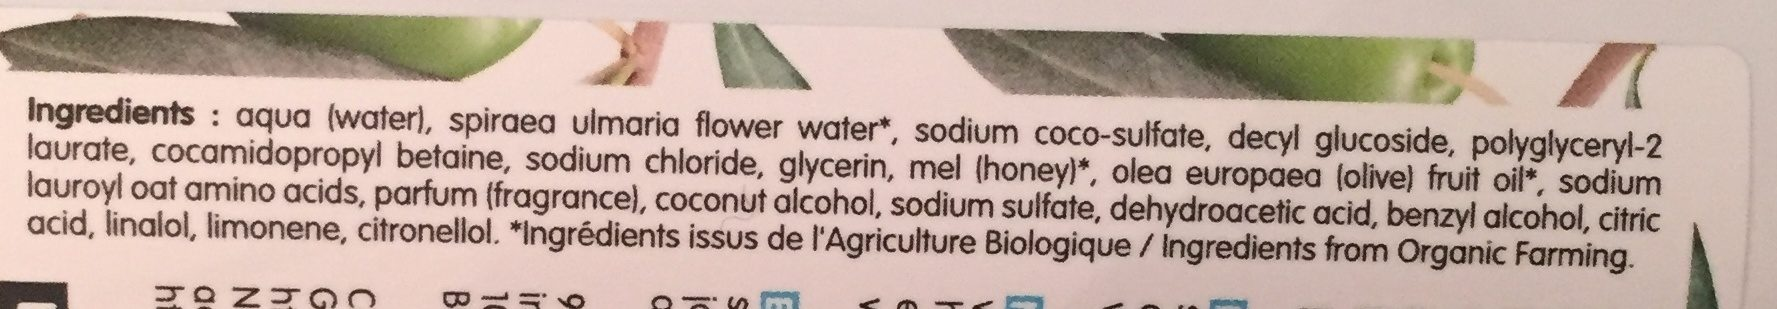 Gel Douche Protecteur à L'Olive - 1L - Coslys - Ingredients